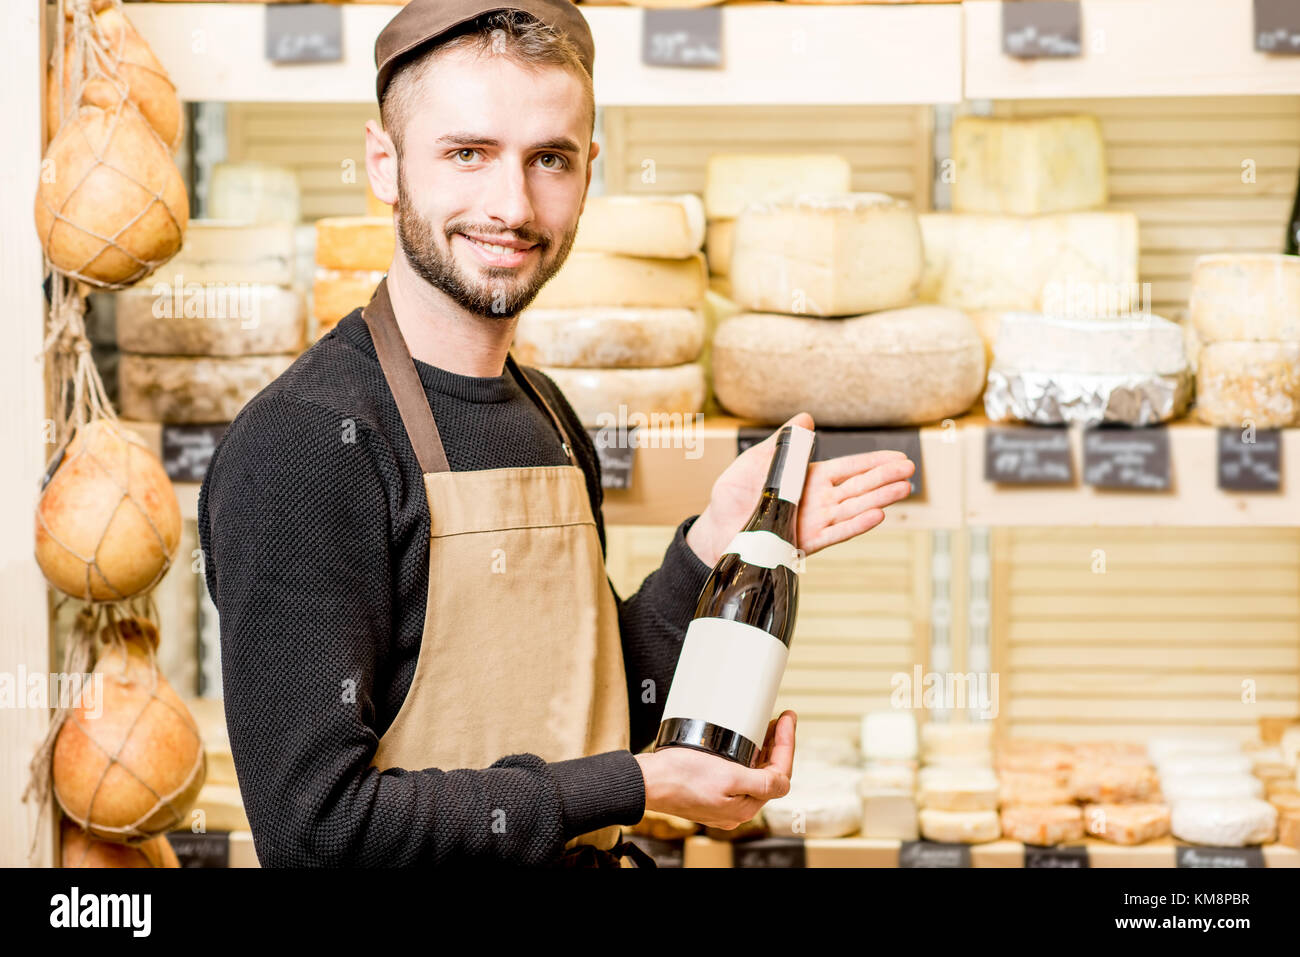 Portrait of a young sommelier in uniform standing with wine bottle